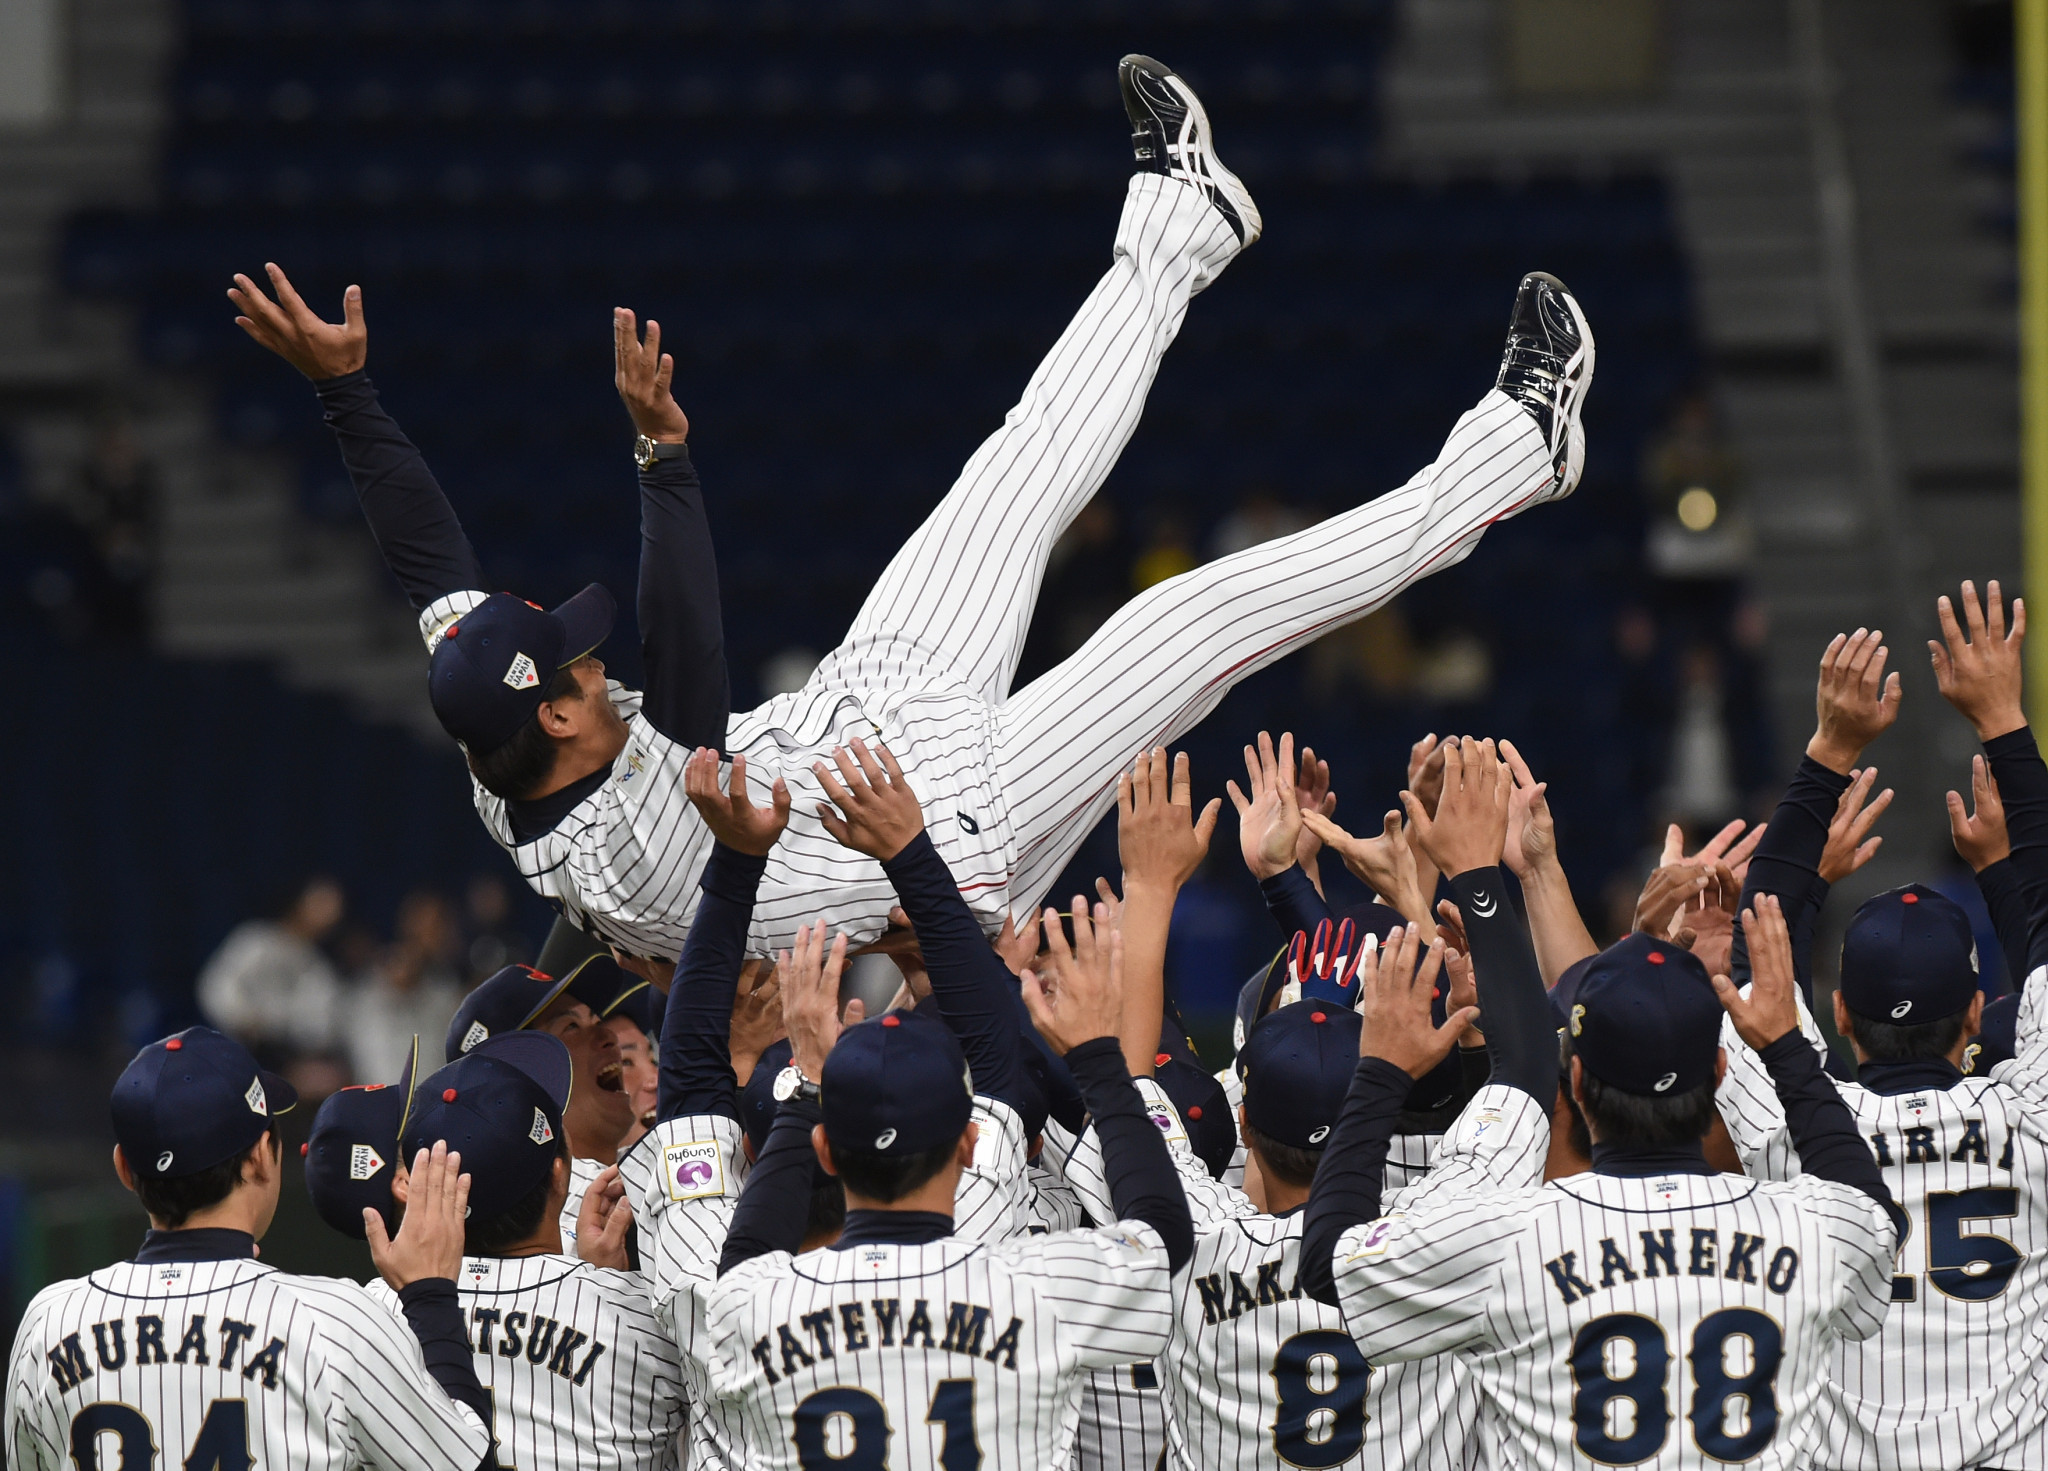 Atsunori Inaba, airborne, was manager when Japan won the 2019 WBSC Premier12 tournament ©Getty Images